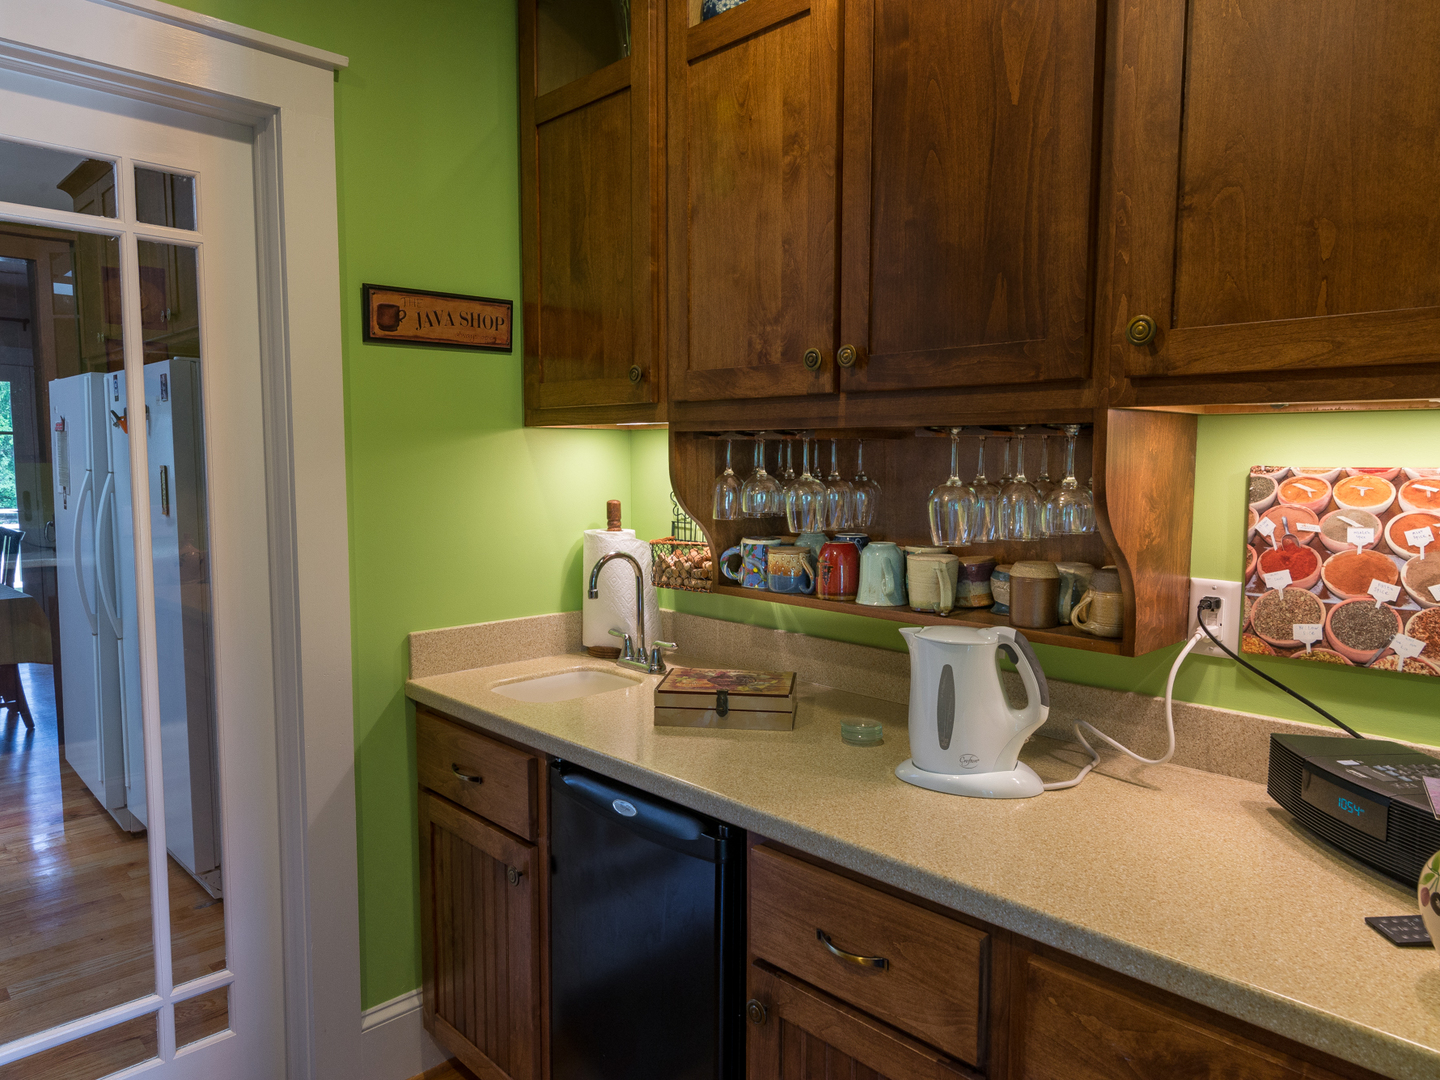 A kitchen with a sink and a microwave at Arbor House of Black Mountain Bed and Breakfast.